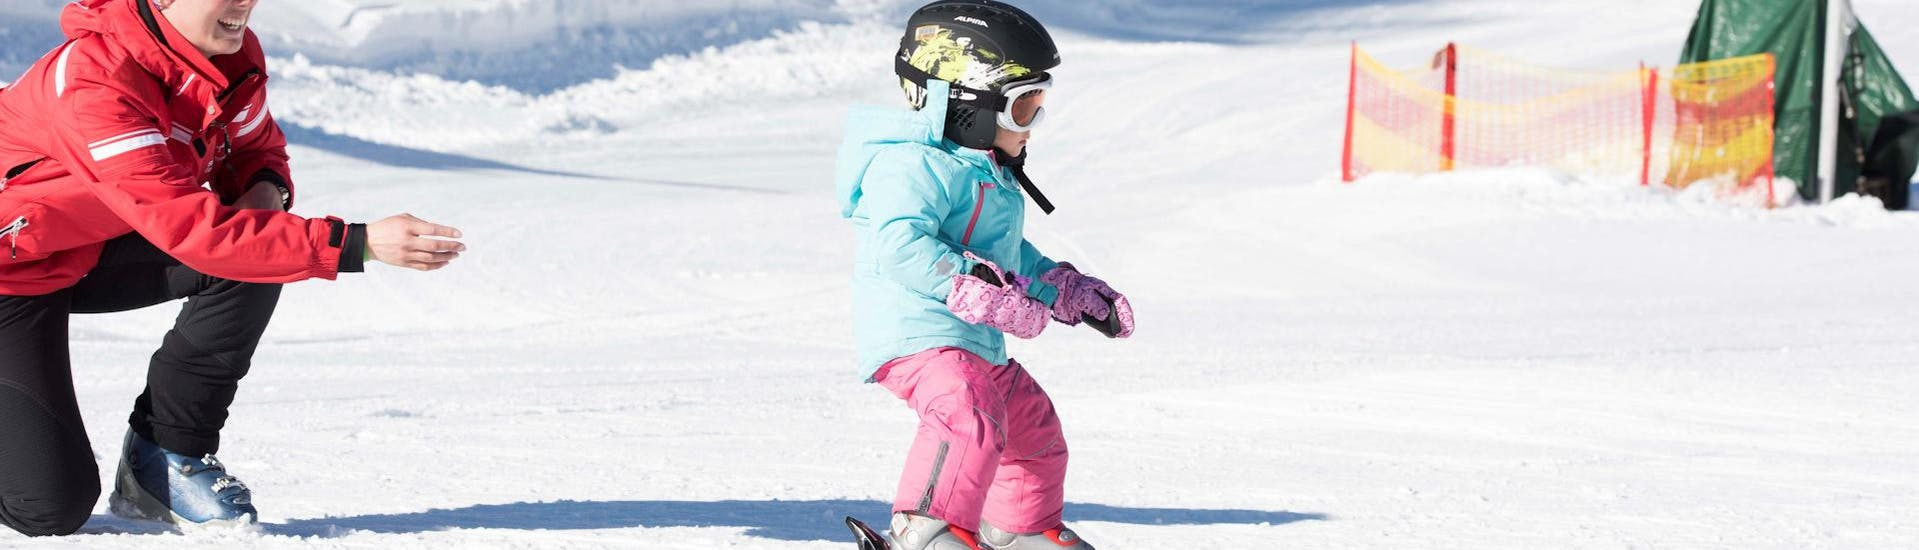 Ski Lessons for Kids (from 5 years) - Beginners